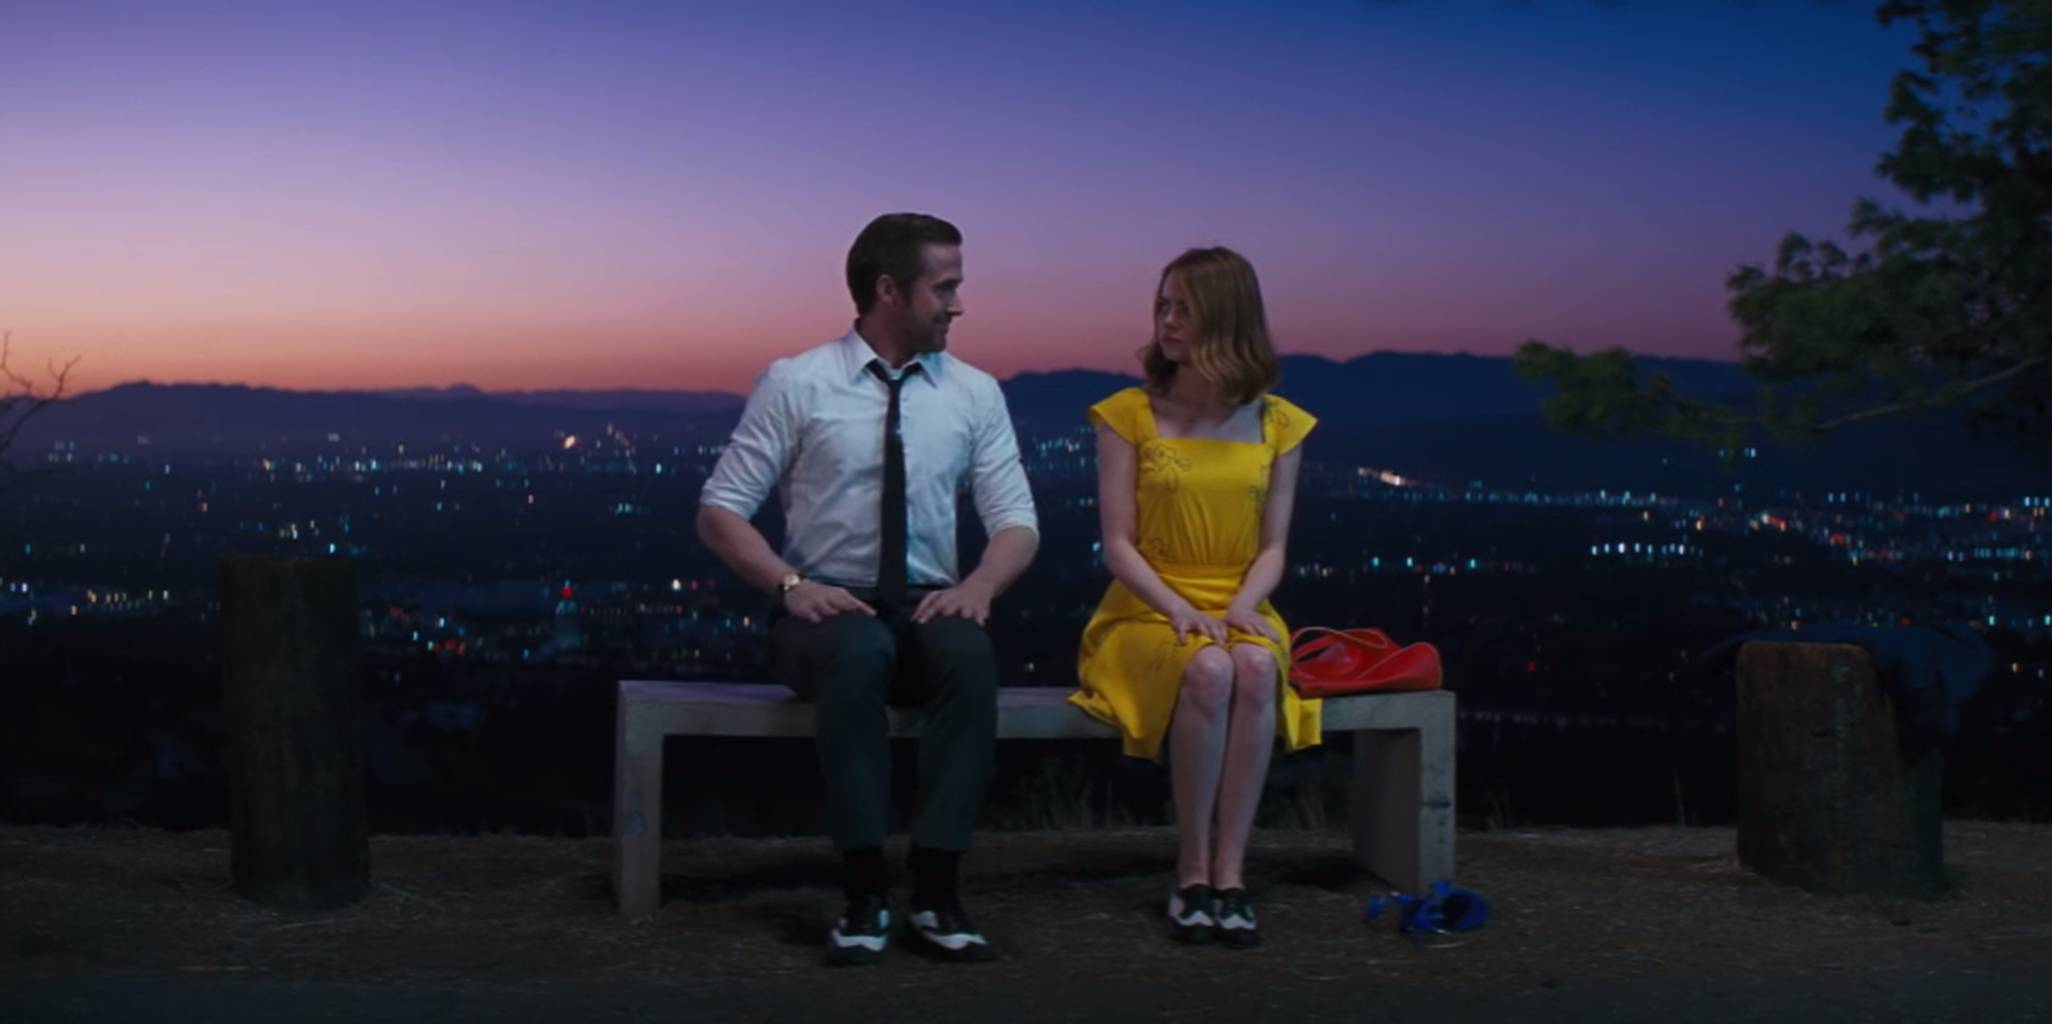 LA-LA-LAND-Photo-32-du-film-Emma-Stone-Ryan-Gosling-film-2017-SND-Go-with-the-Blog.jpg